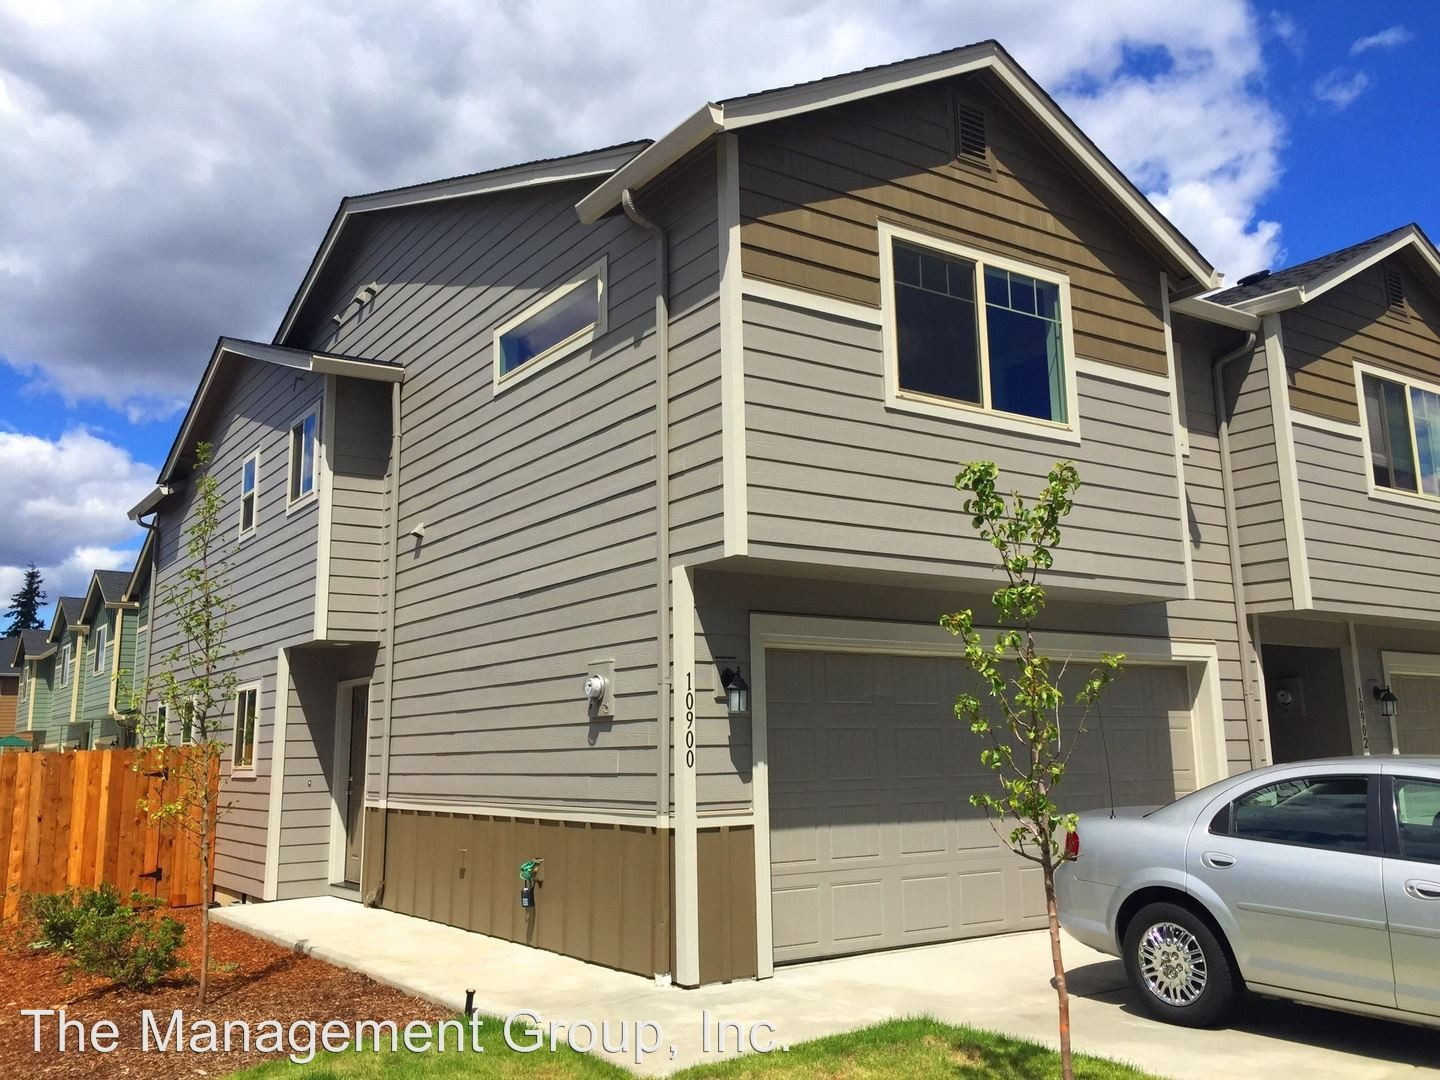 Cheap Apartments For Rent Vancouver Wa